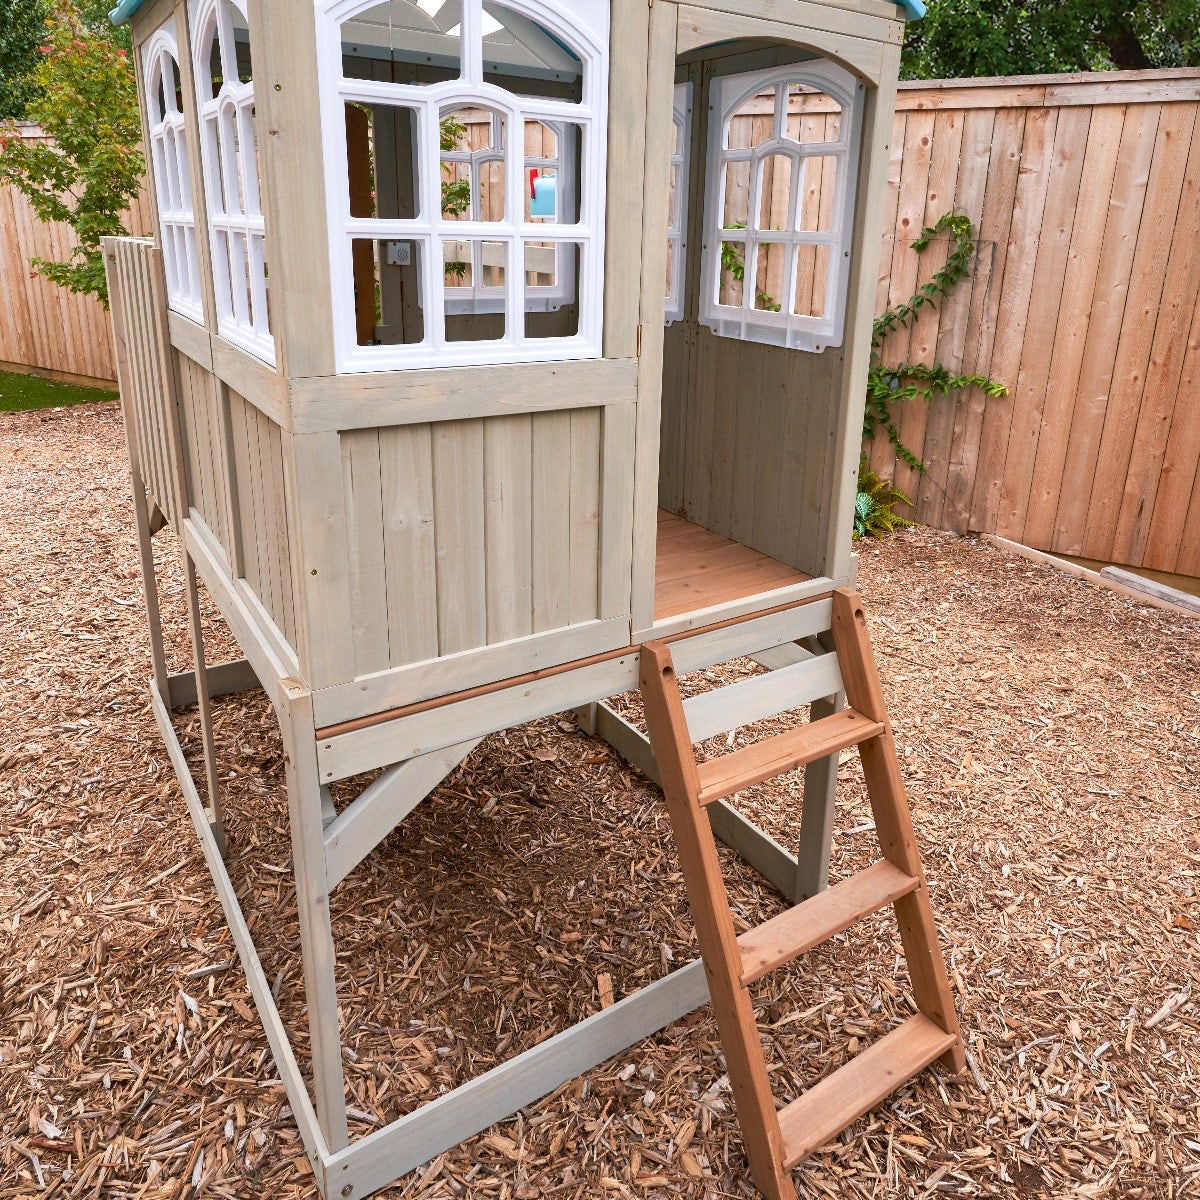 Unique raised playhouse gives kids a feel of a treehouse